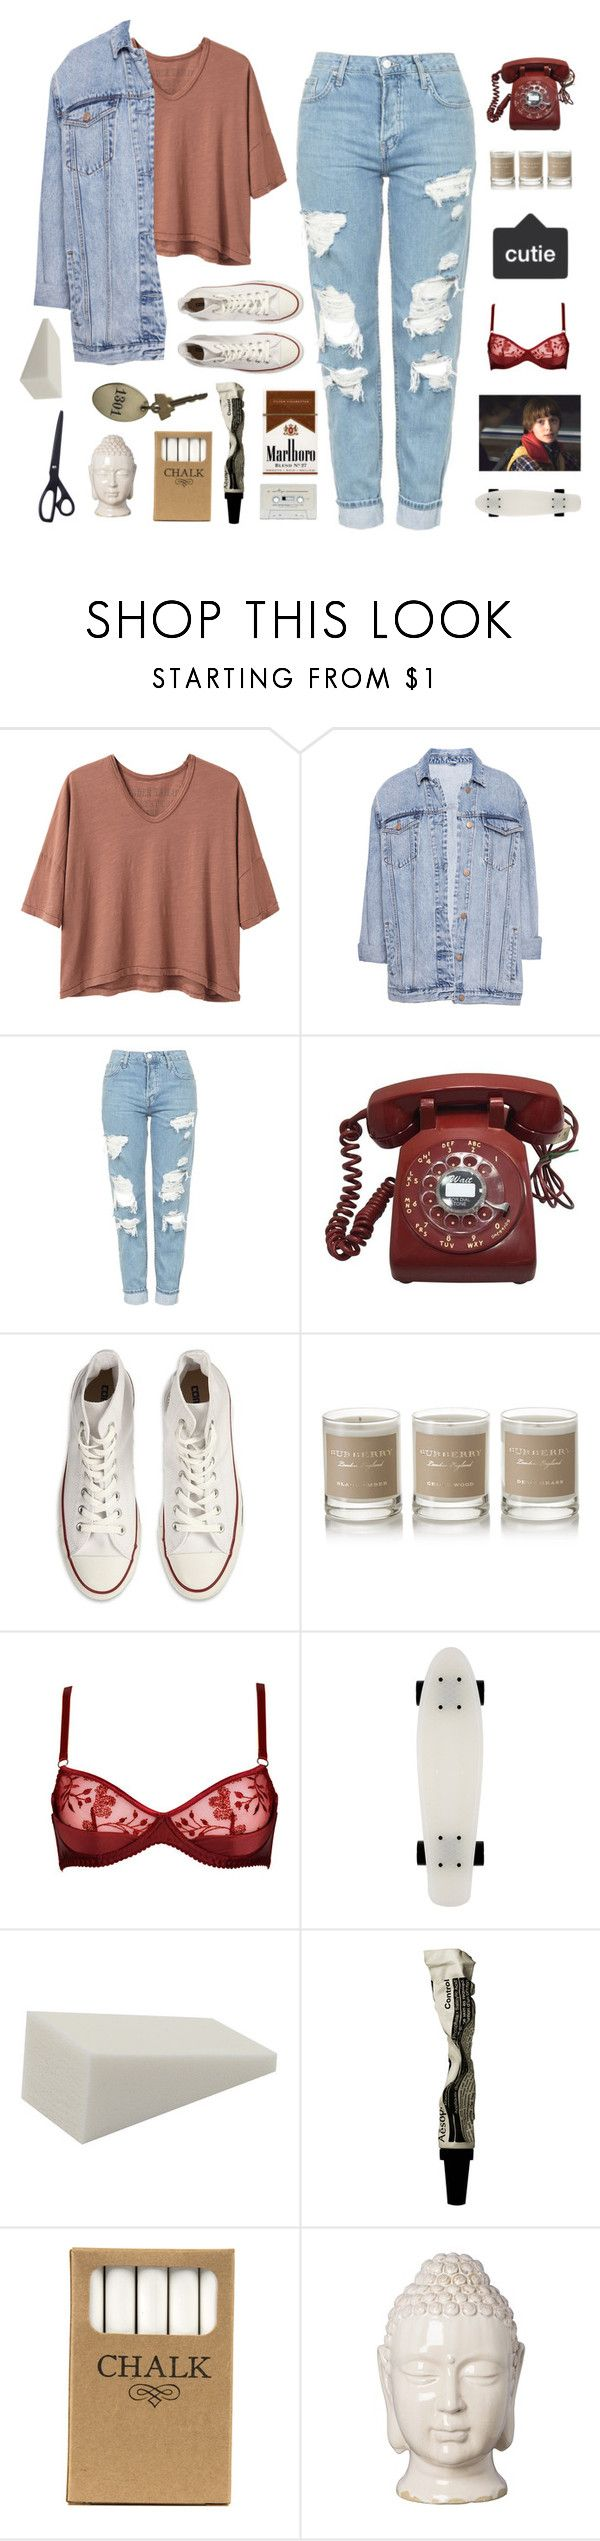 """""""BAD NEWS WHEN YOU SEE THAT BLOODY NOSE"""" by midsummer-dreams ❤ liked on Polyvore featuring Alexander Yamaguchi, Pull&Bear, Topshop, Converse, Burberry, Aesop, Jayson Home, Emissary, HAY and KarisSets"""